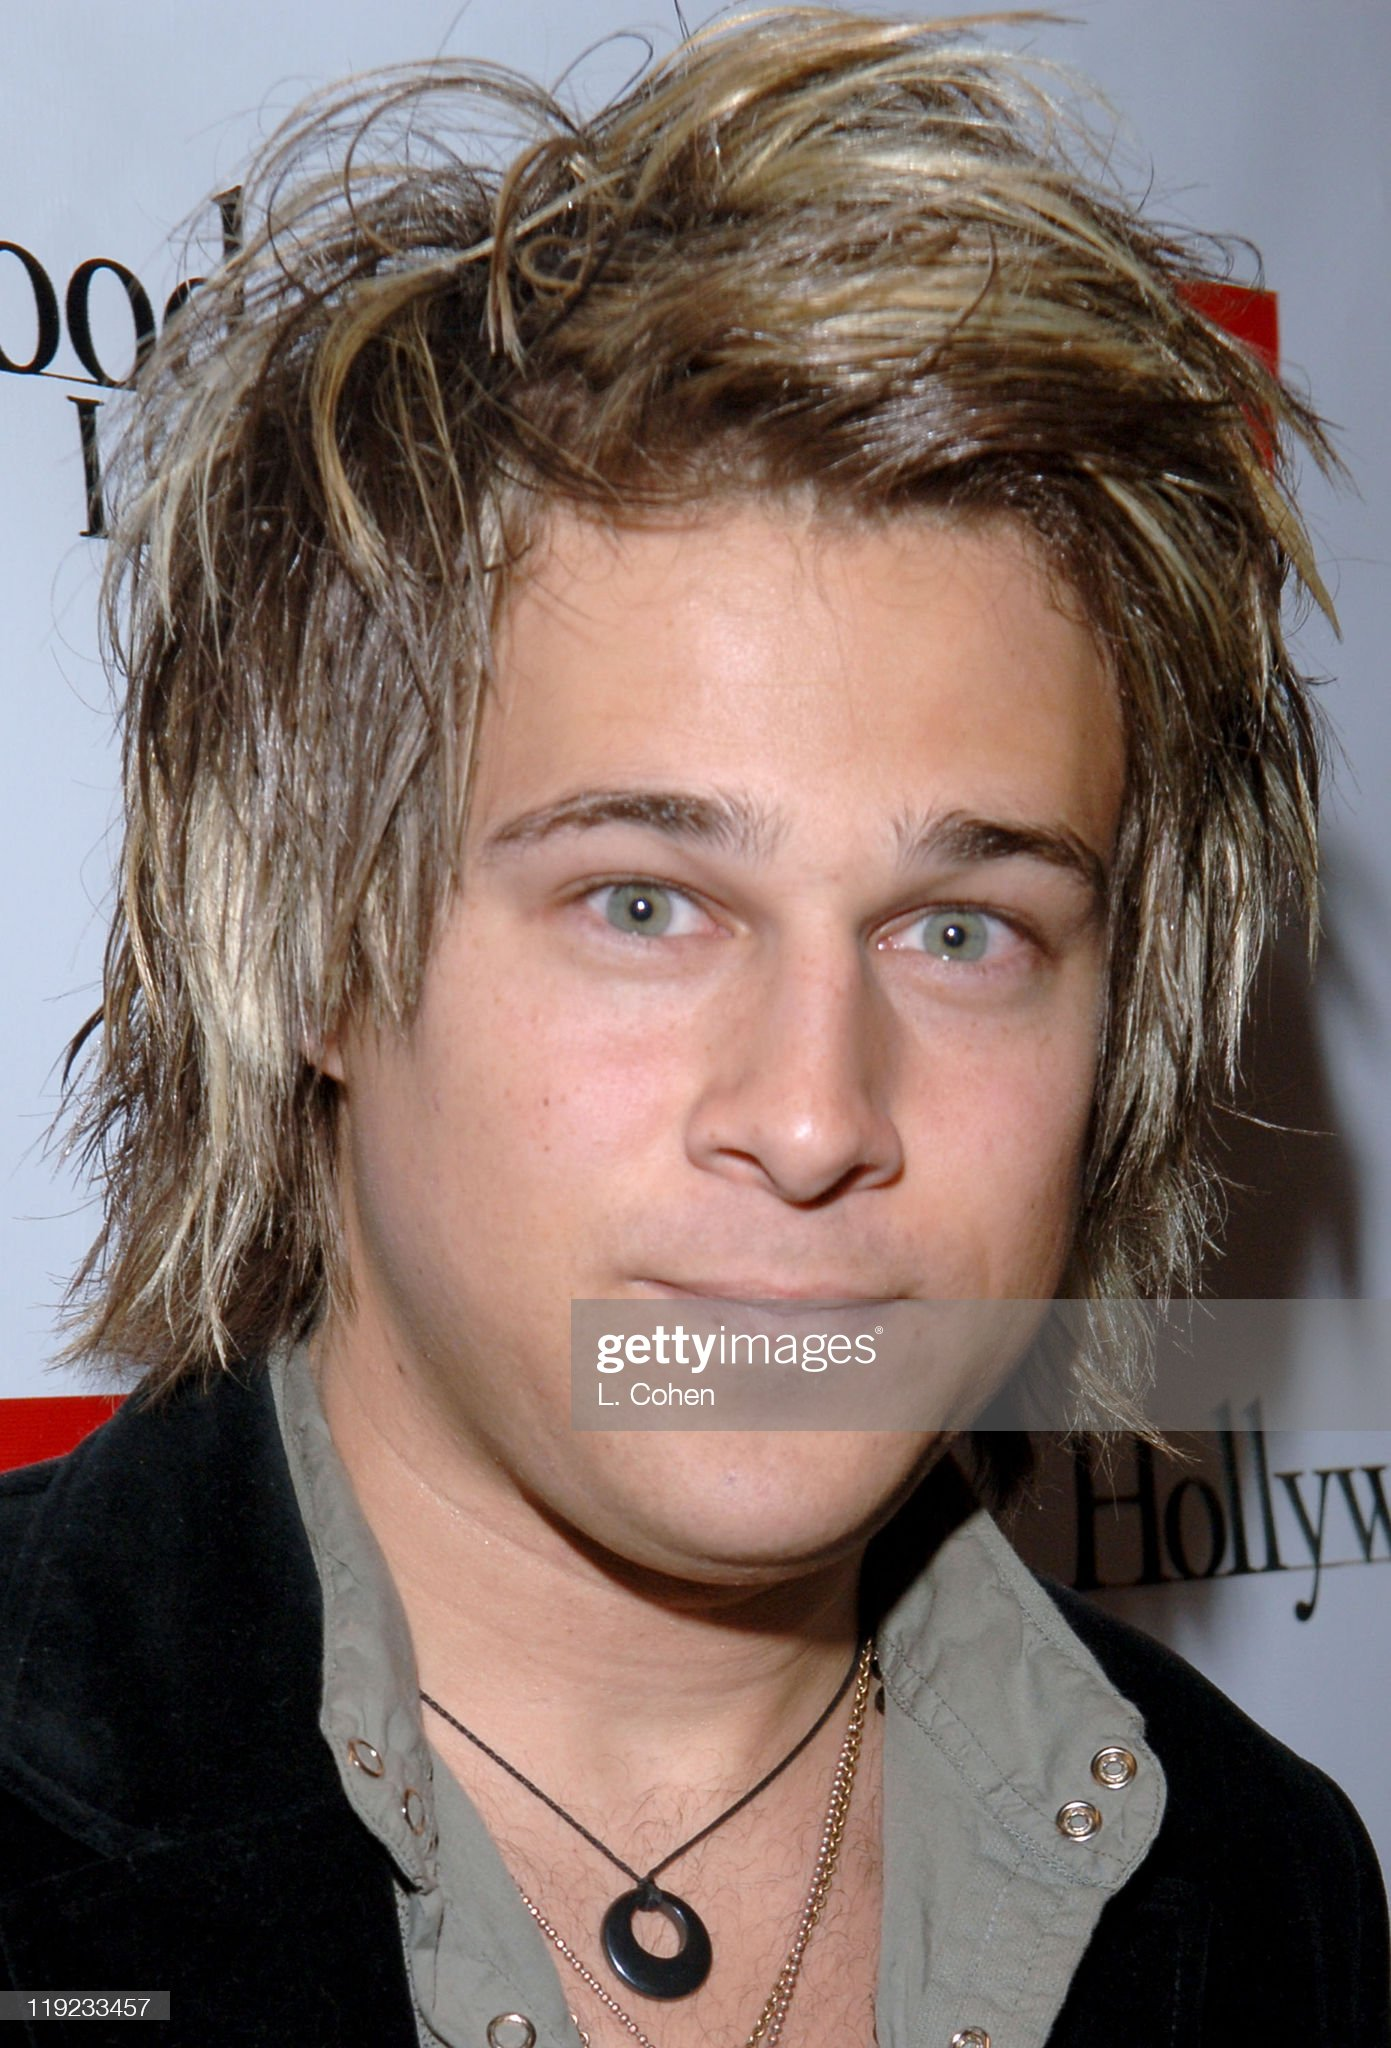 Ojos verdes - Famosas y famosos con los ojos de color VERDE Ryan-cabrera-during-diesel-presents-young-hollywood-awards-countdown-picture-id119233457?s=2048x2048